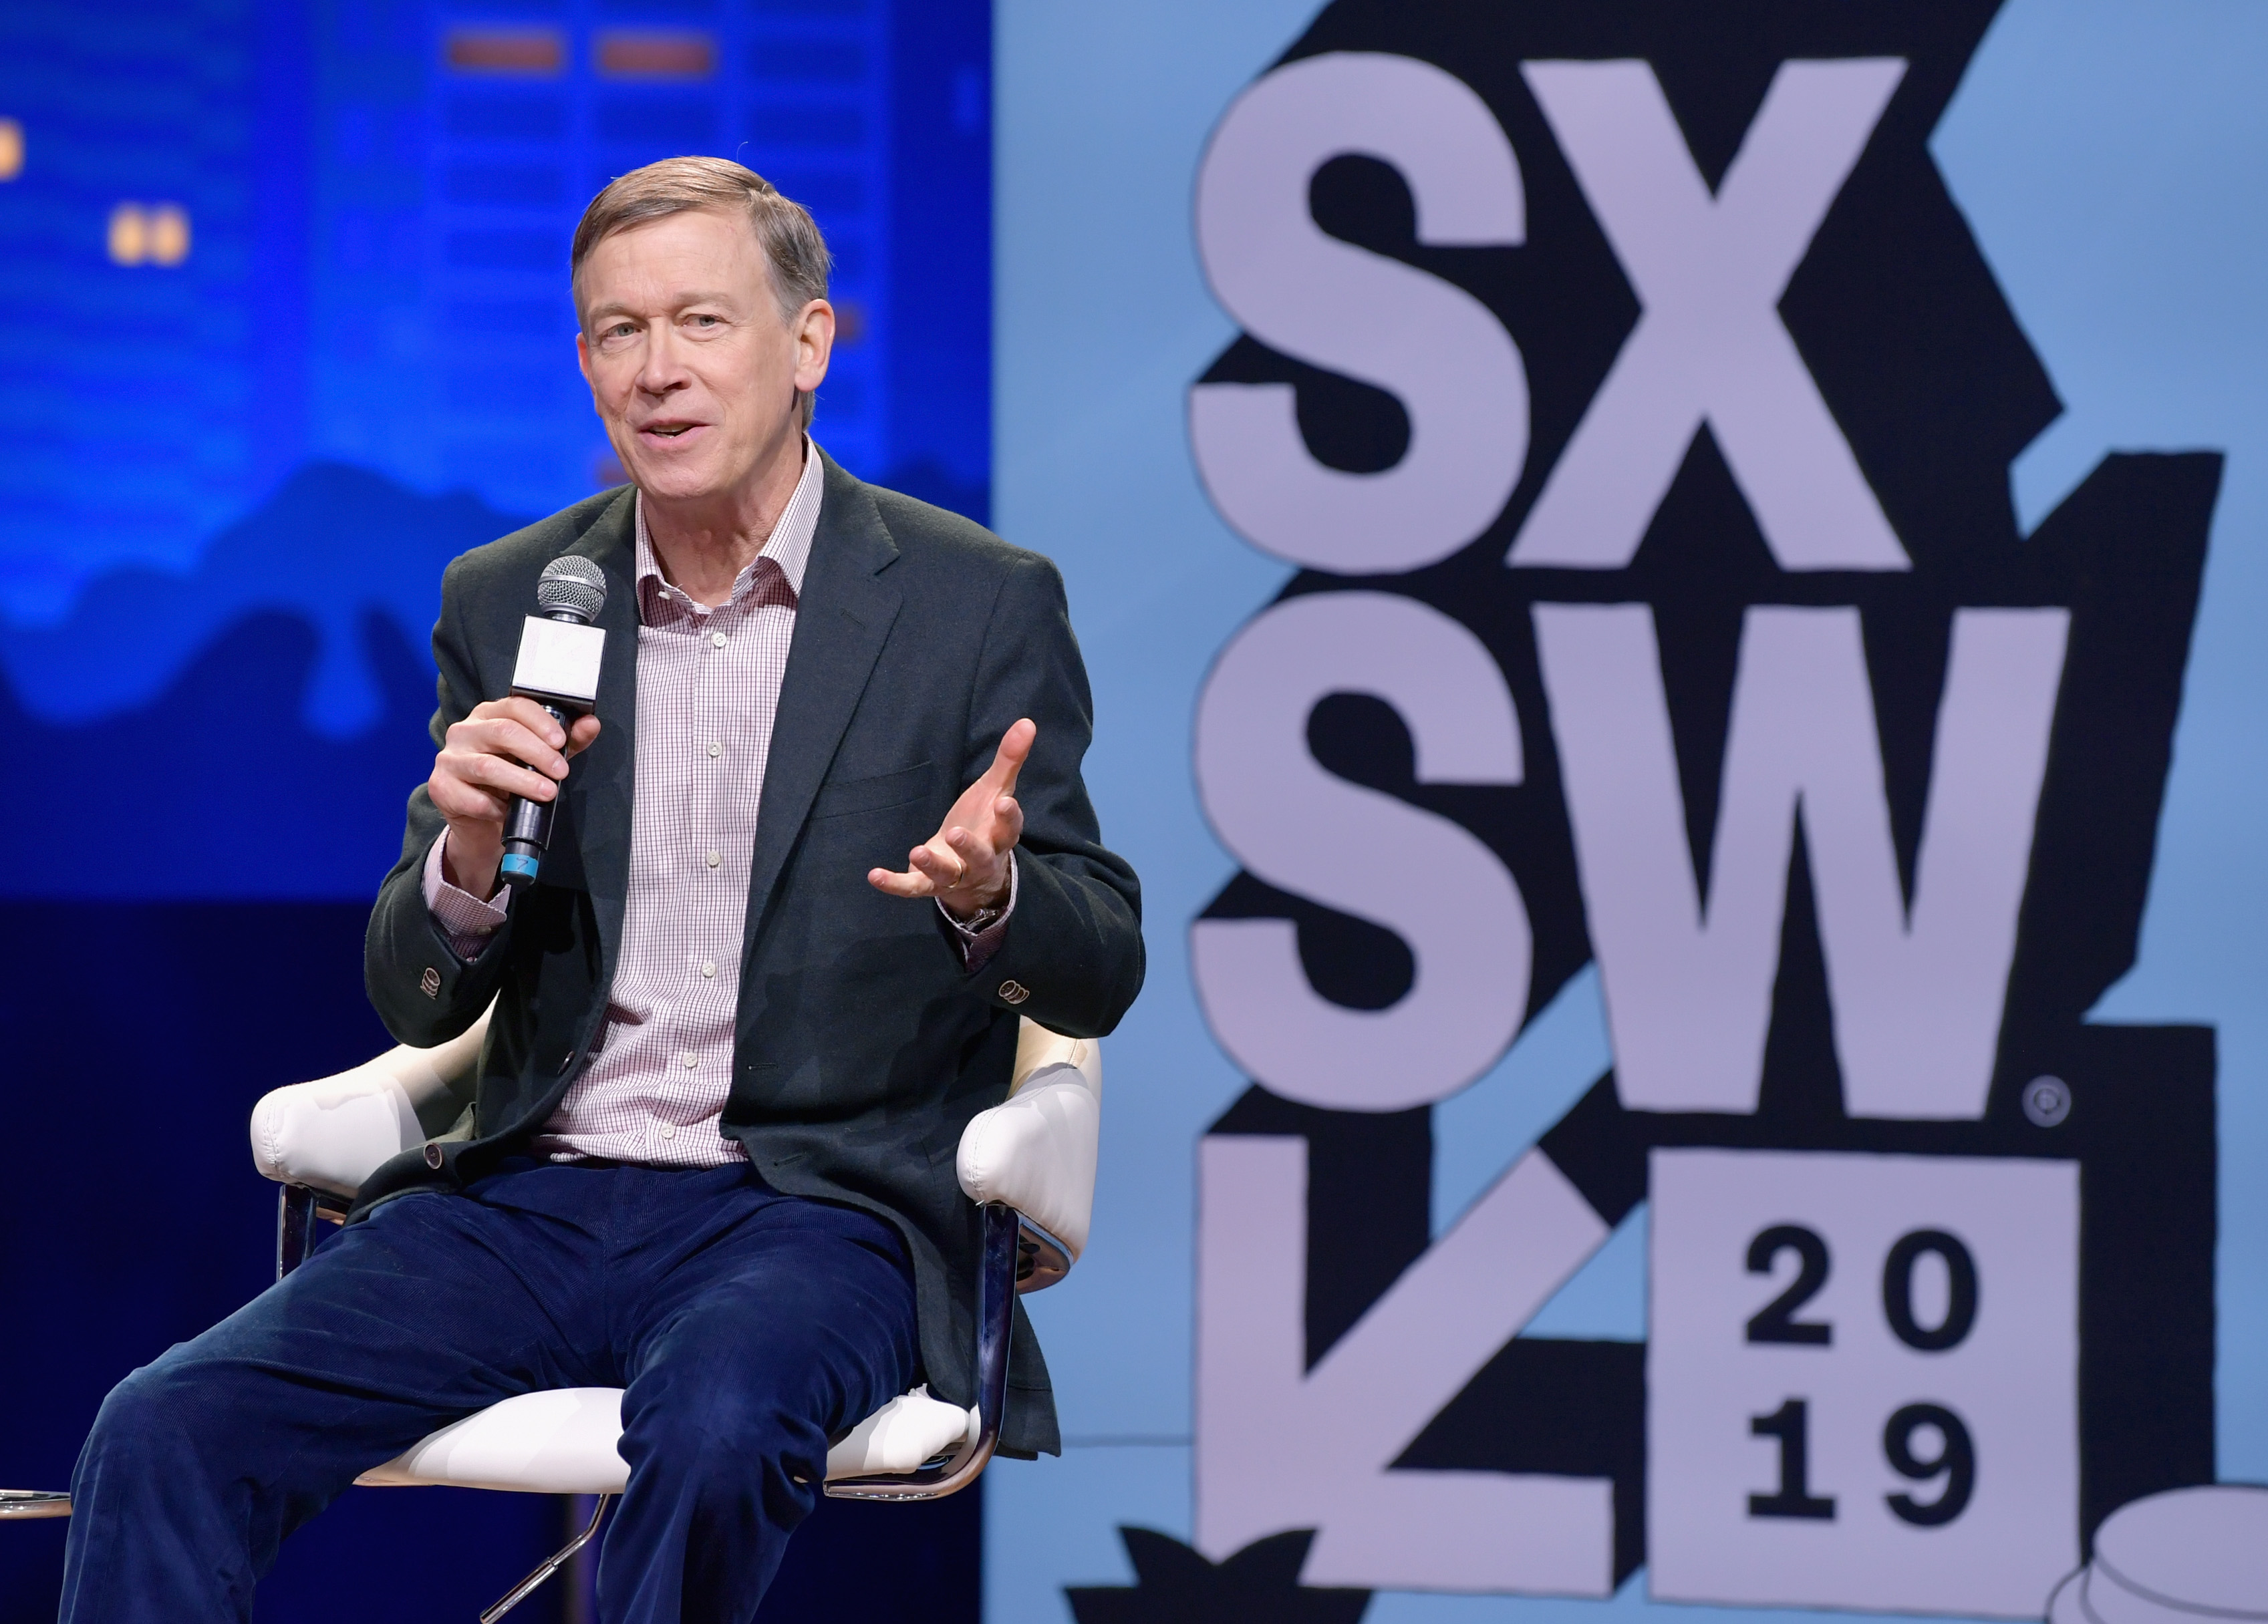 John Hickenlooper speaks onstage at Conversations About America's Future: Former Governor John Hickenlooper during the 2019 SXSW Conference and Festivals at Austin City Limits Live at the Moody Theater on March 10, 2019 in Austin, Texas.